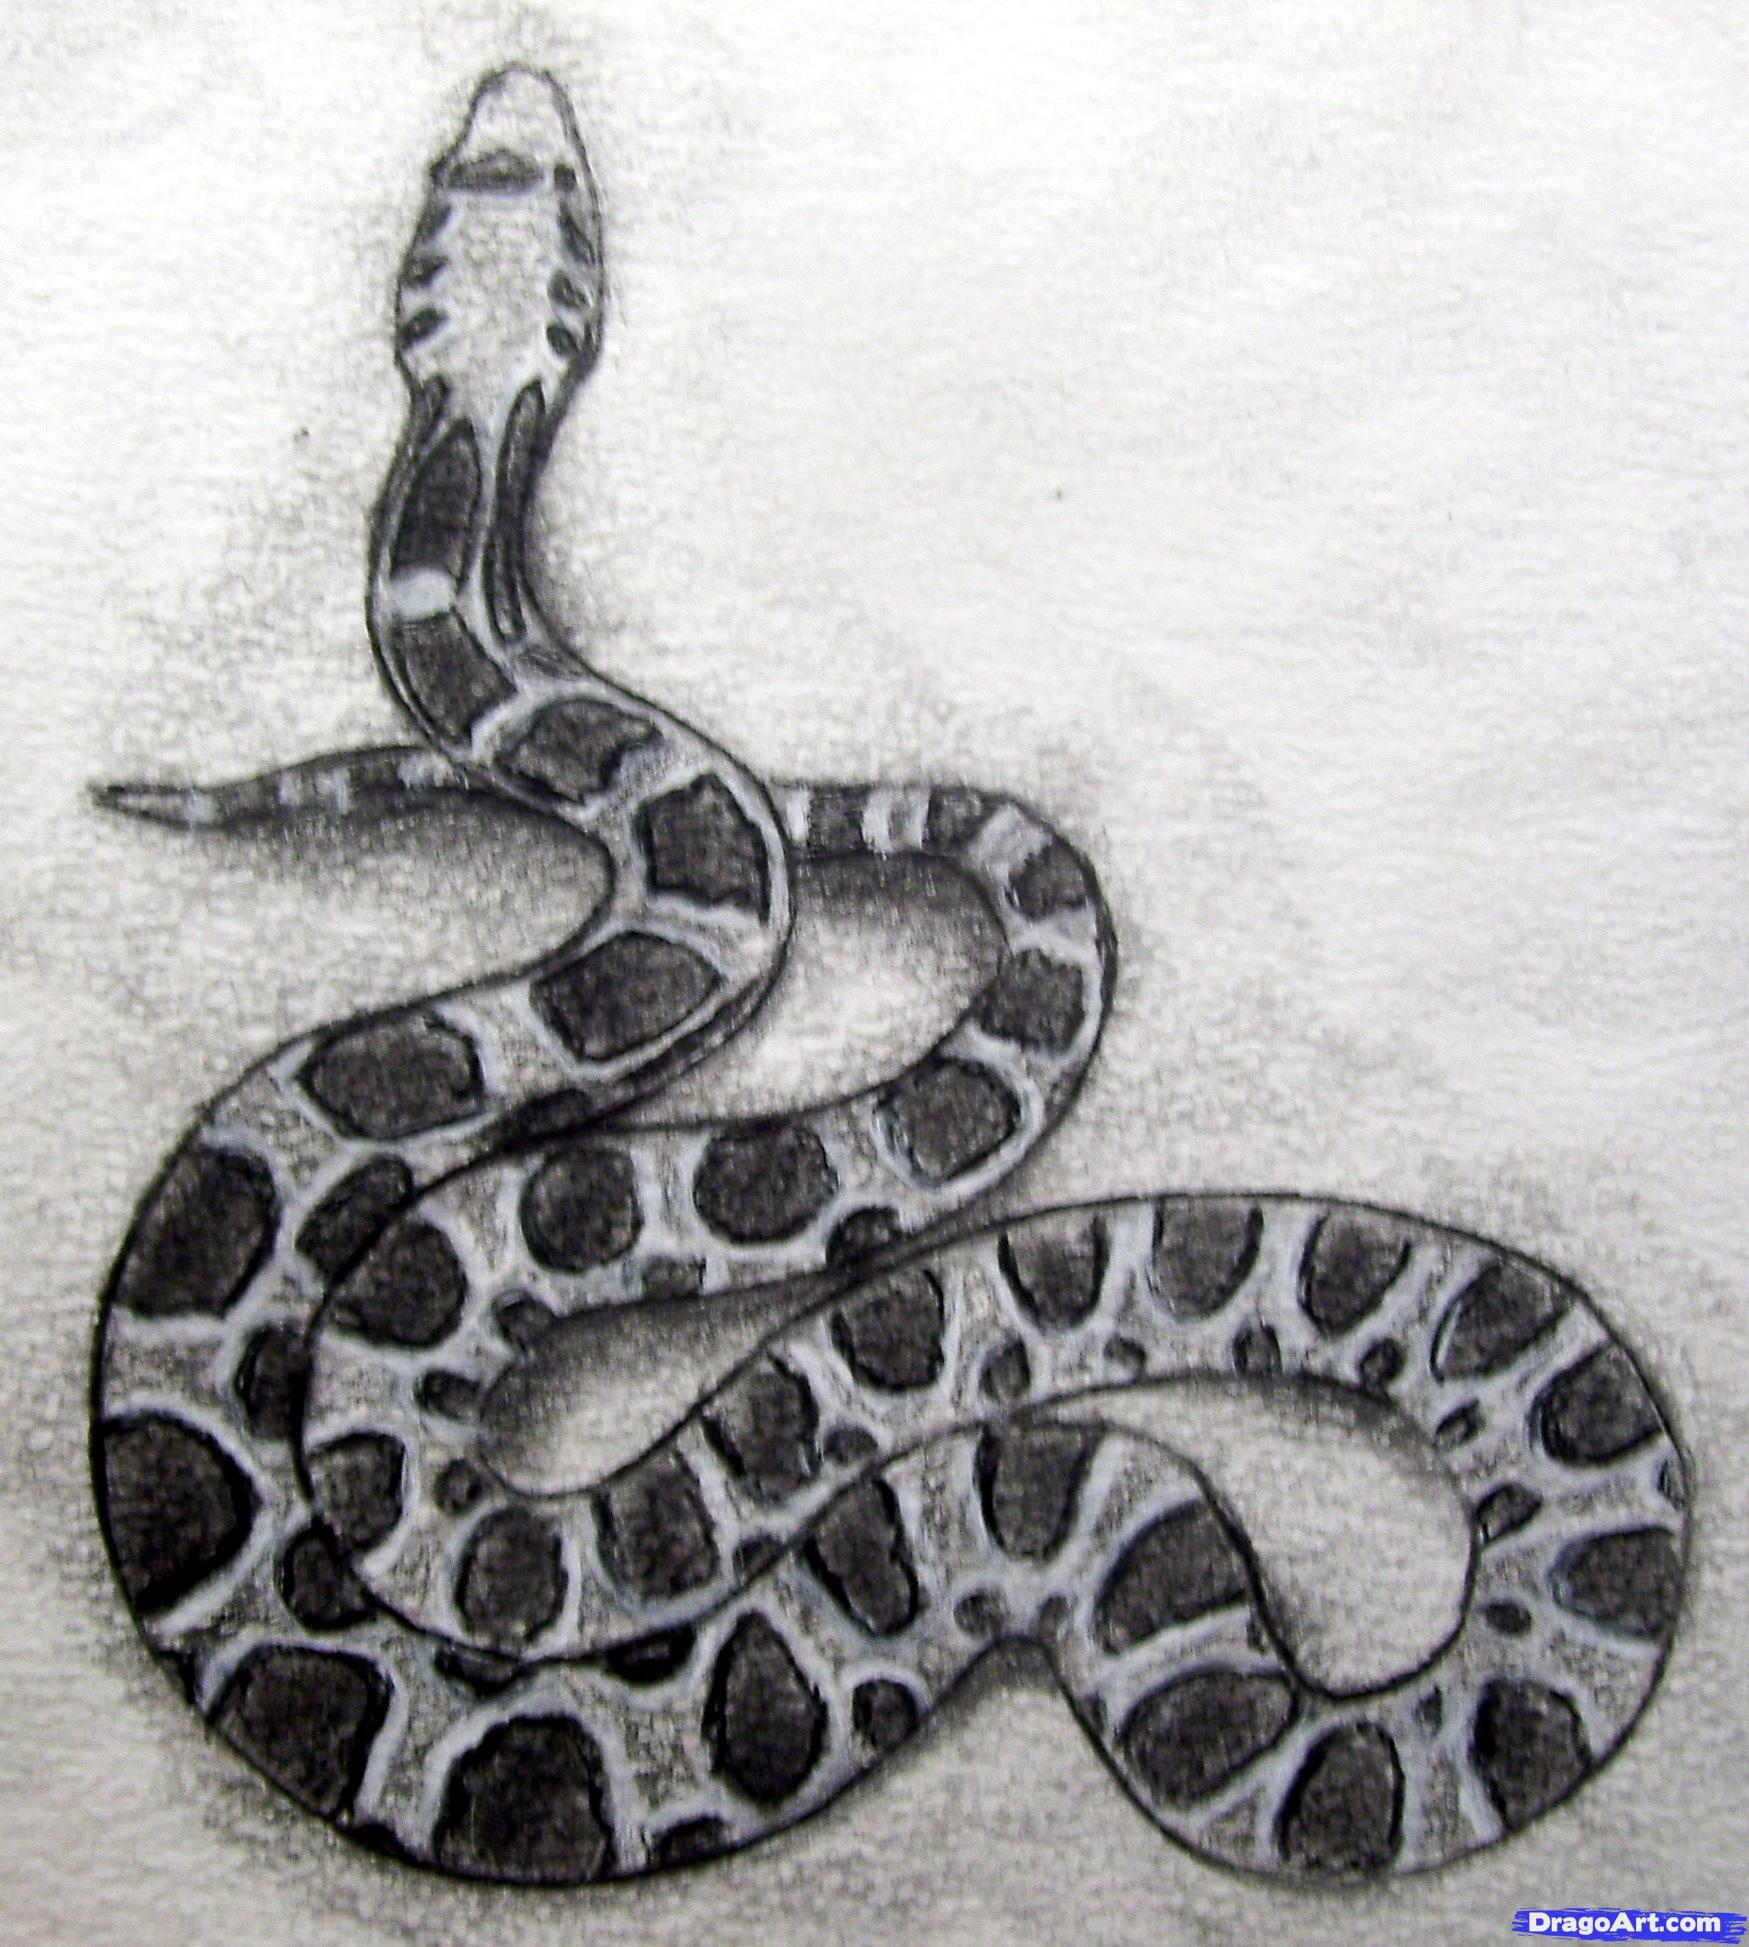 Drawn reptile pencil drawing To How Realistic Snake 8